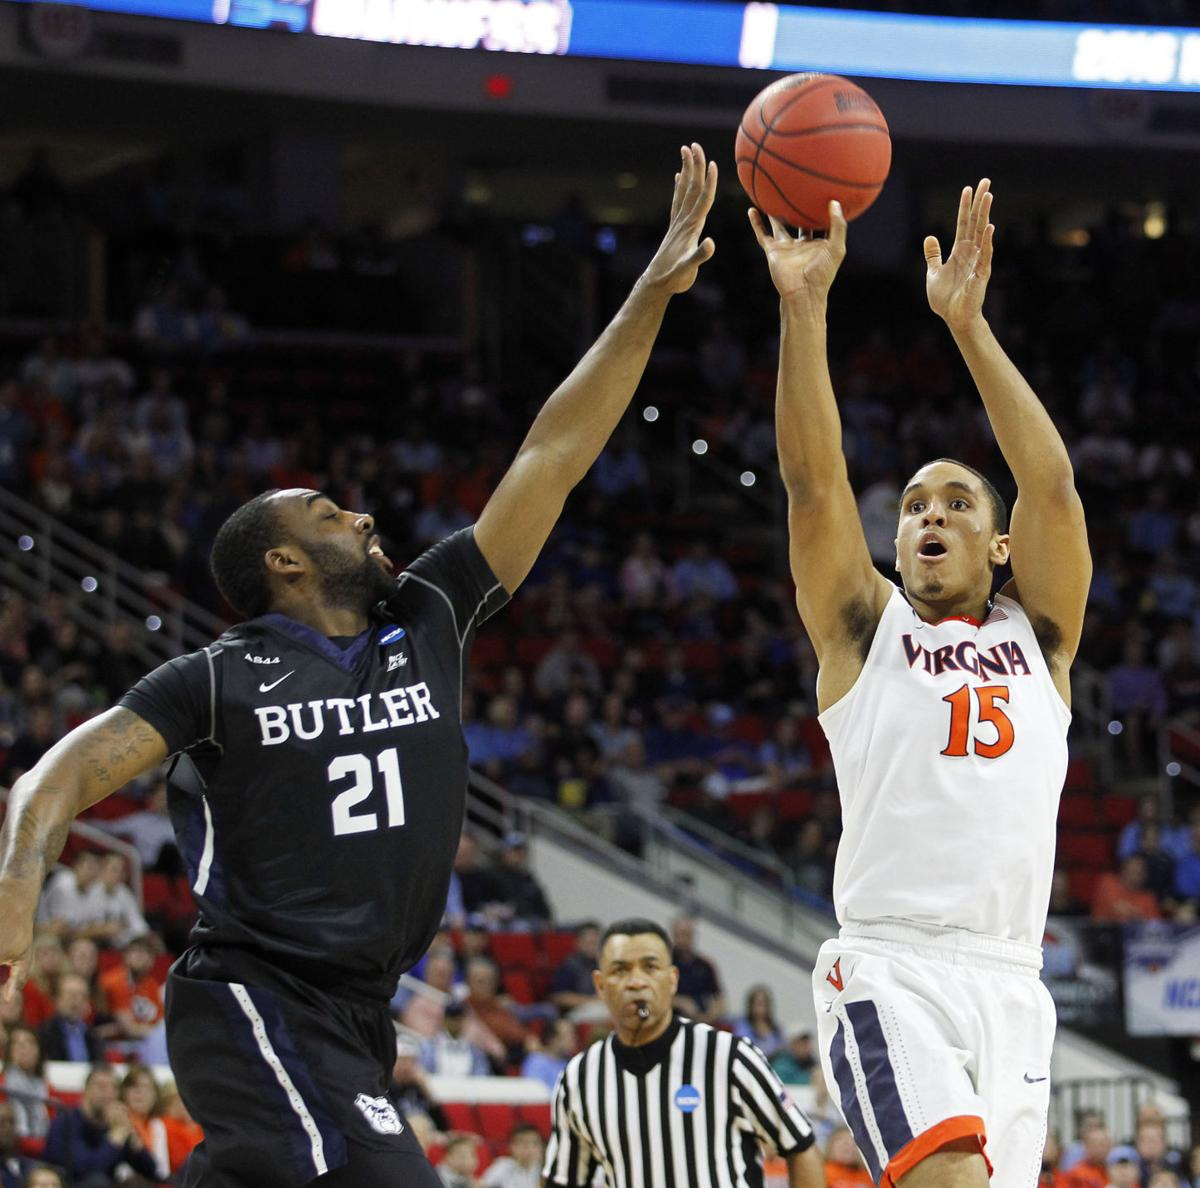 84cdfc9f0 Mother of former UVa star Brogdon does not recall meeting with agent ...